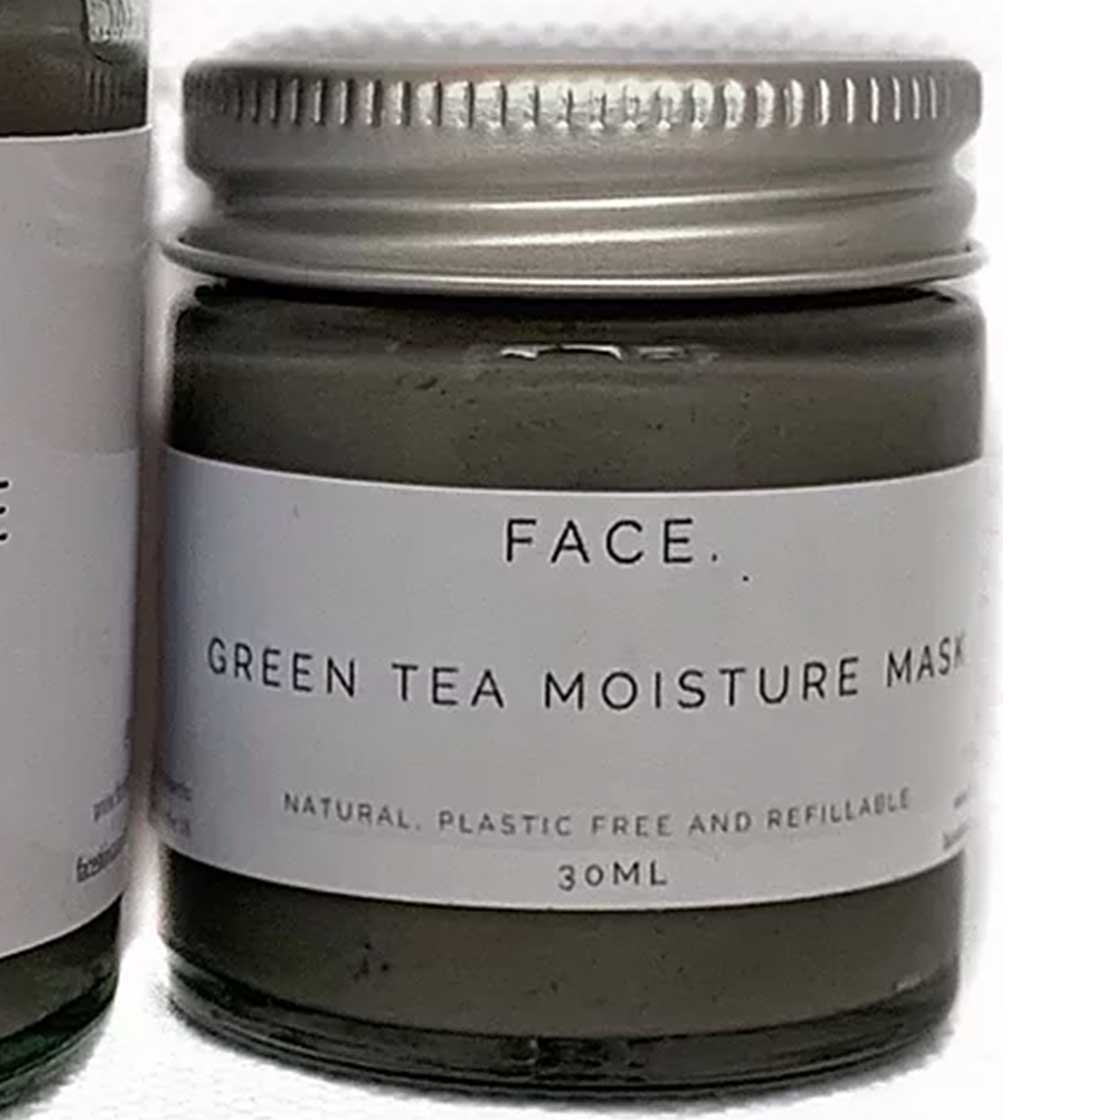 Green Tea Moisture Mask (30ml) by FACE.